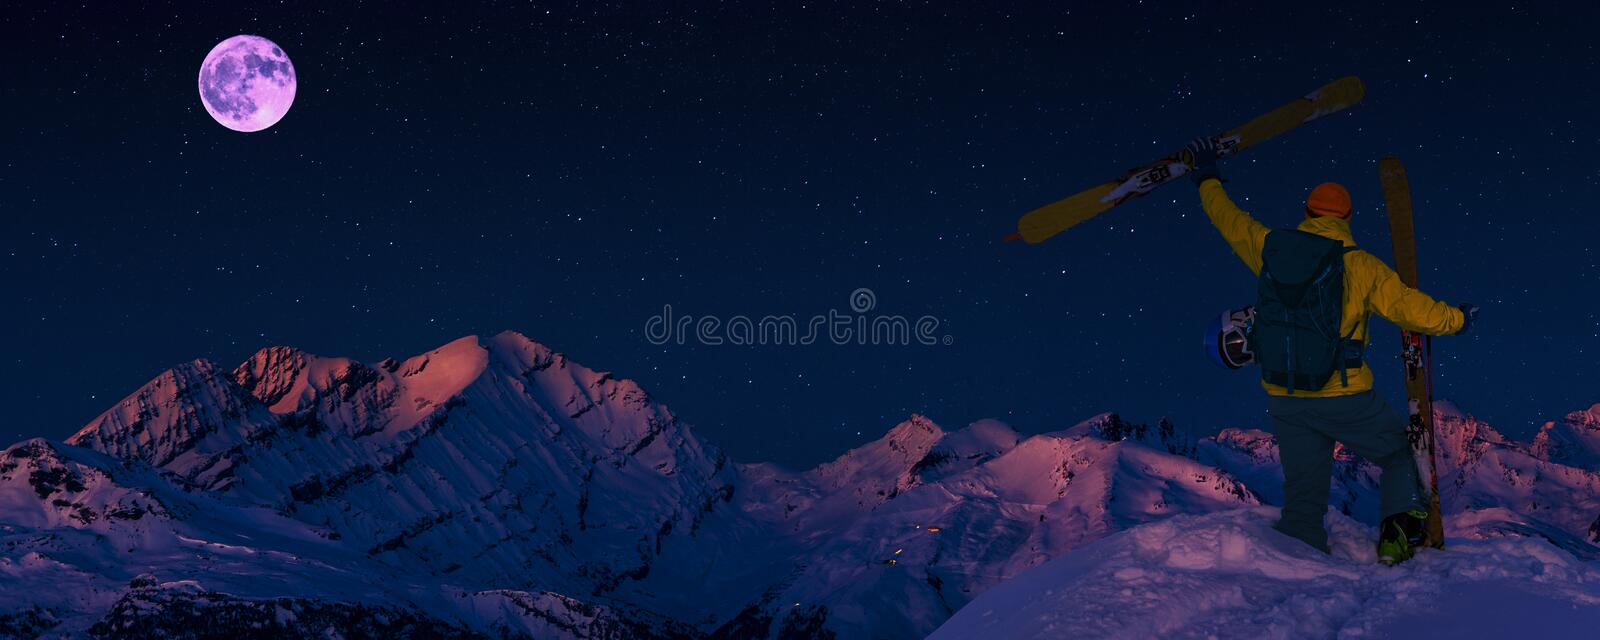 Scenic night backcountry ski panorama sunset landscape of Crans-Montana range in Swiss Alps mountains with peak in background, stock image